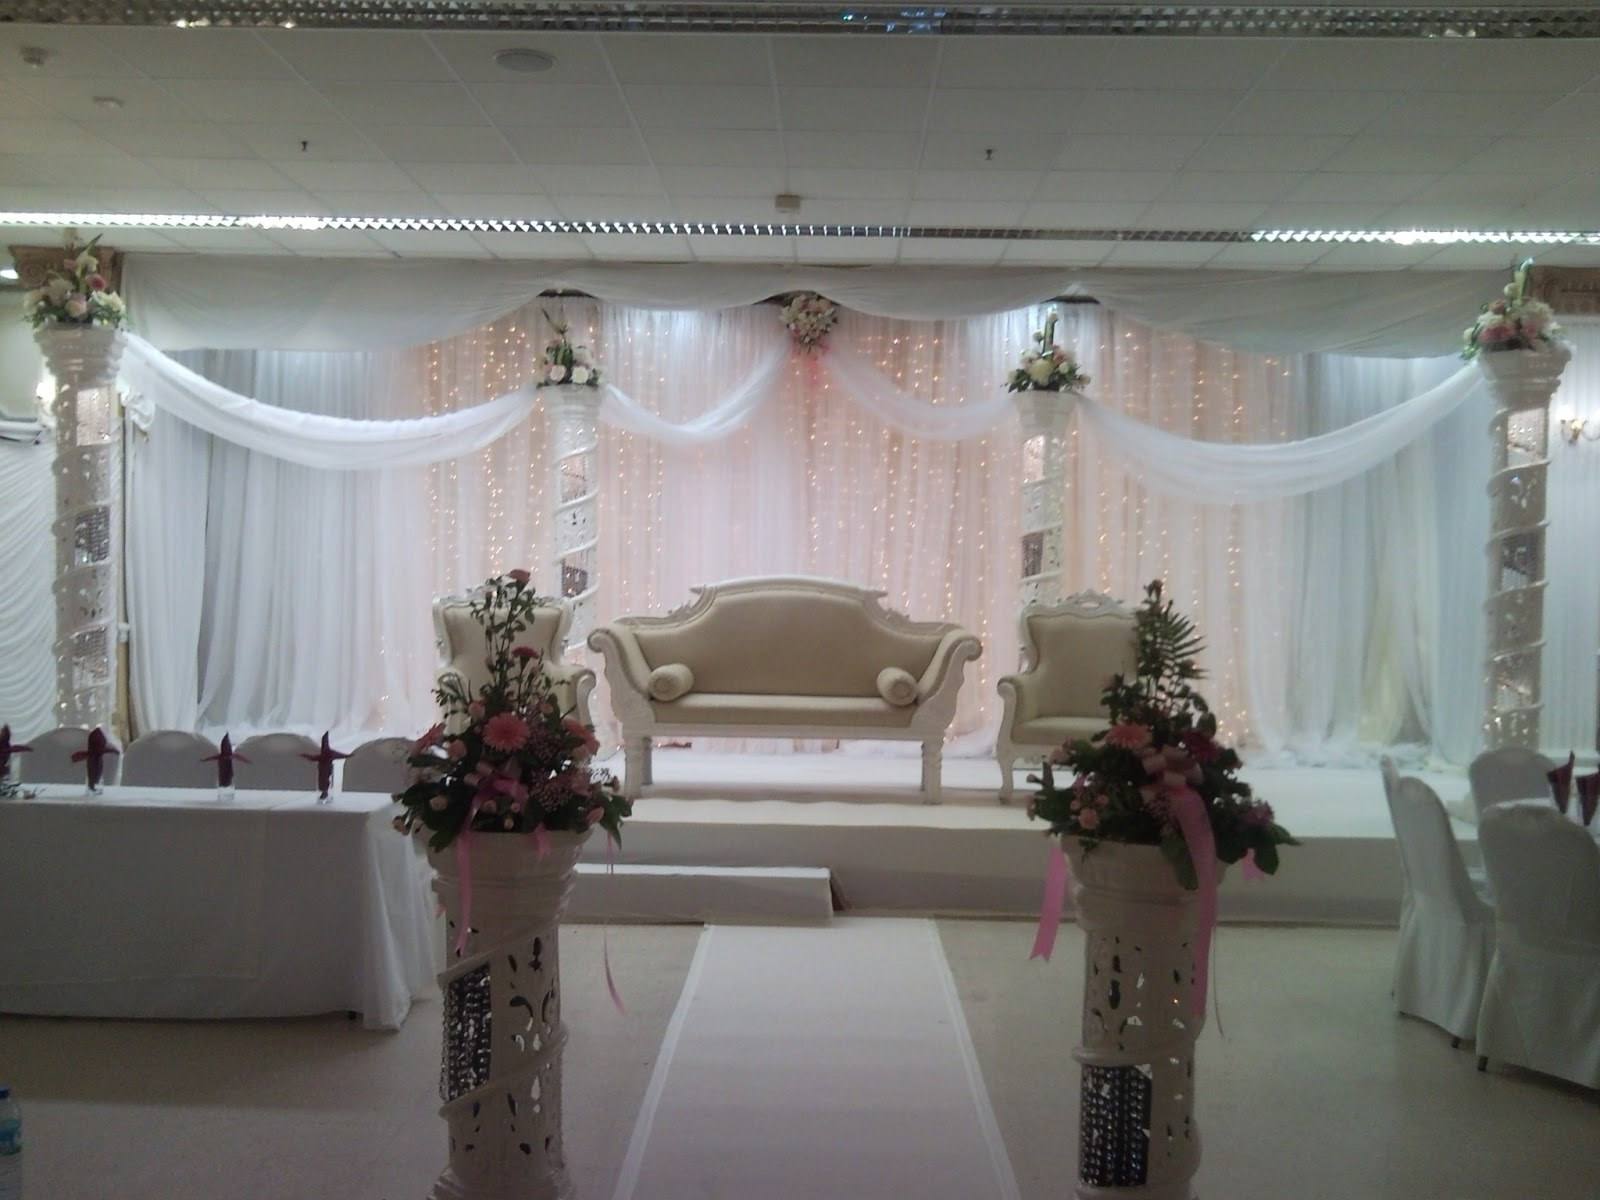 About marriage marriage decoration photos 2013 marriage for New wedding decoration ideas